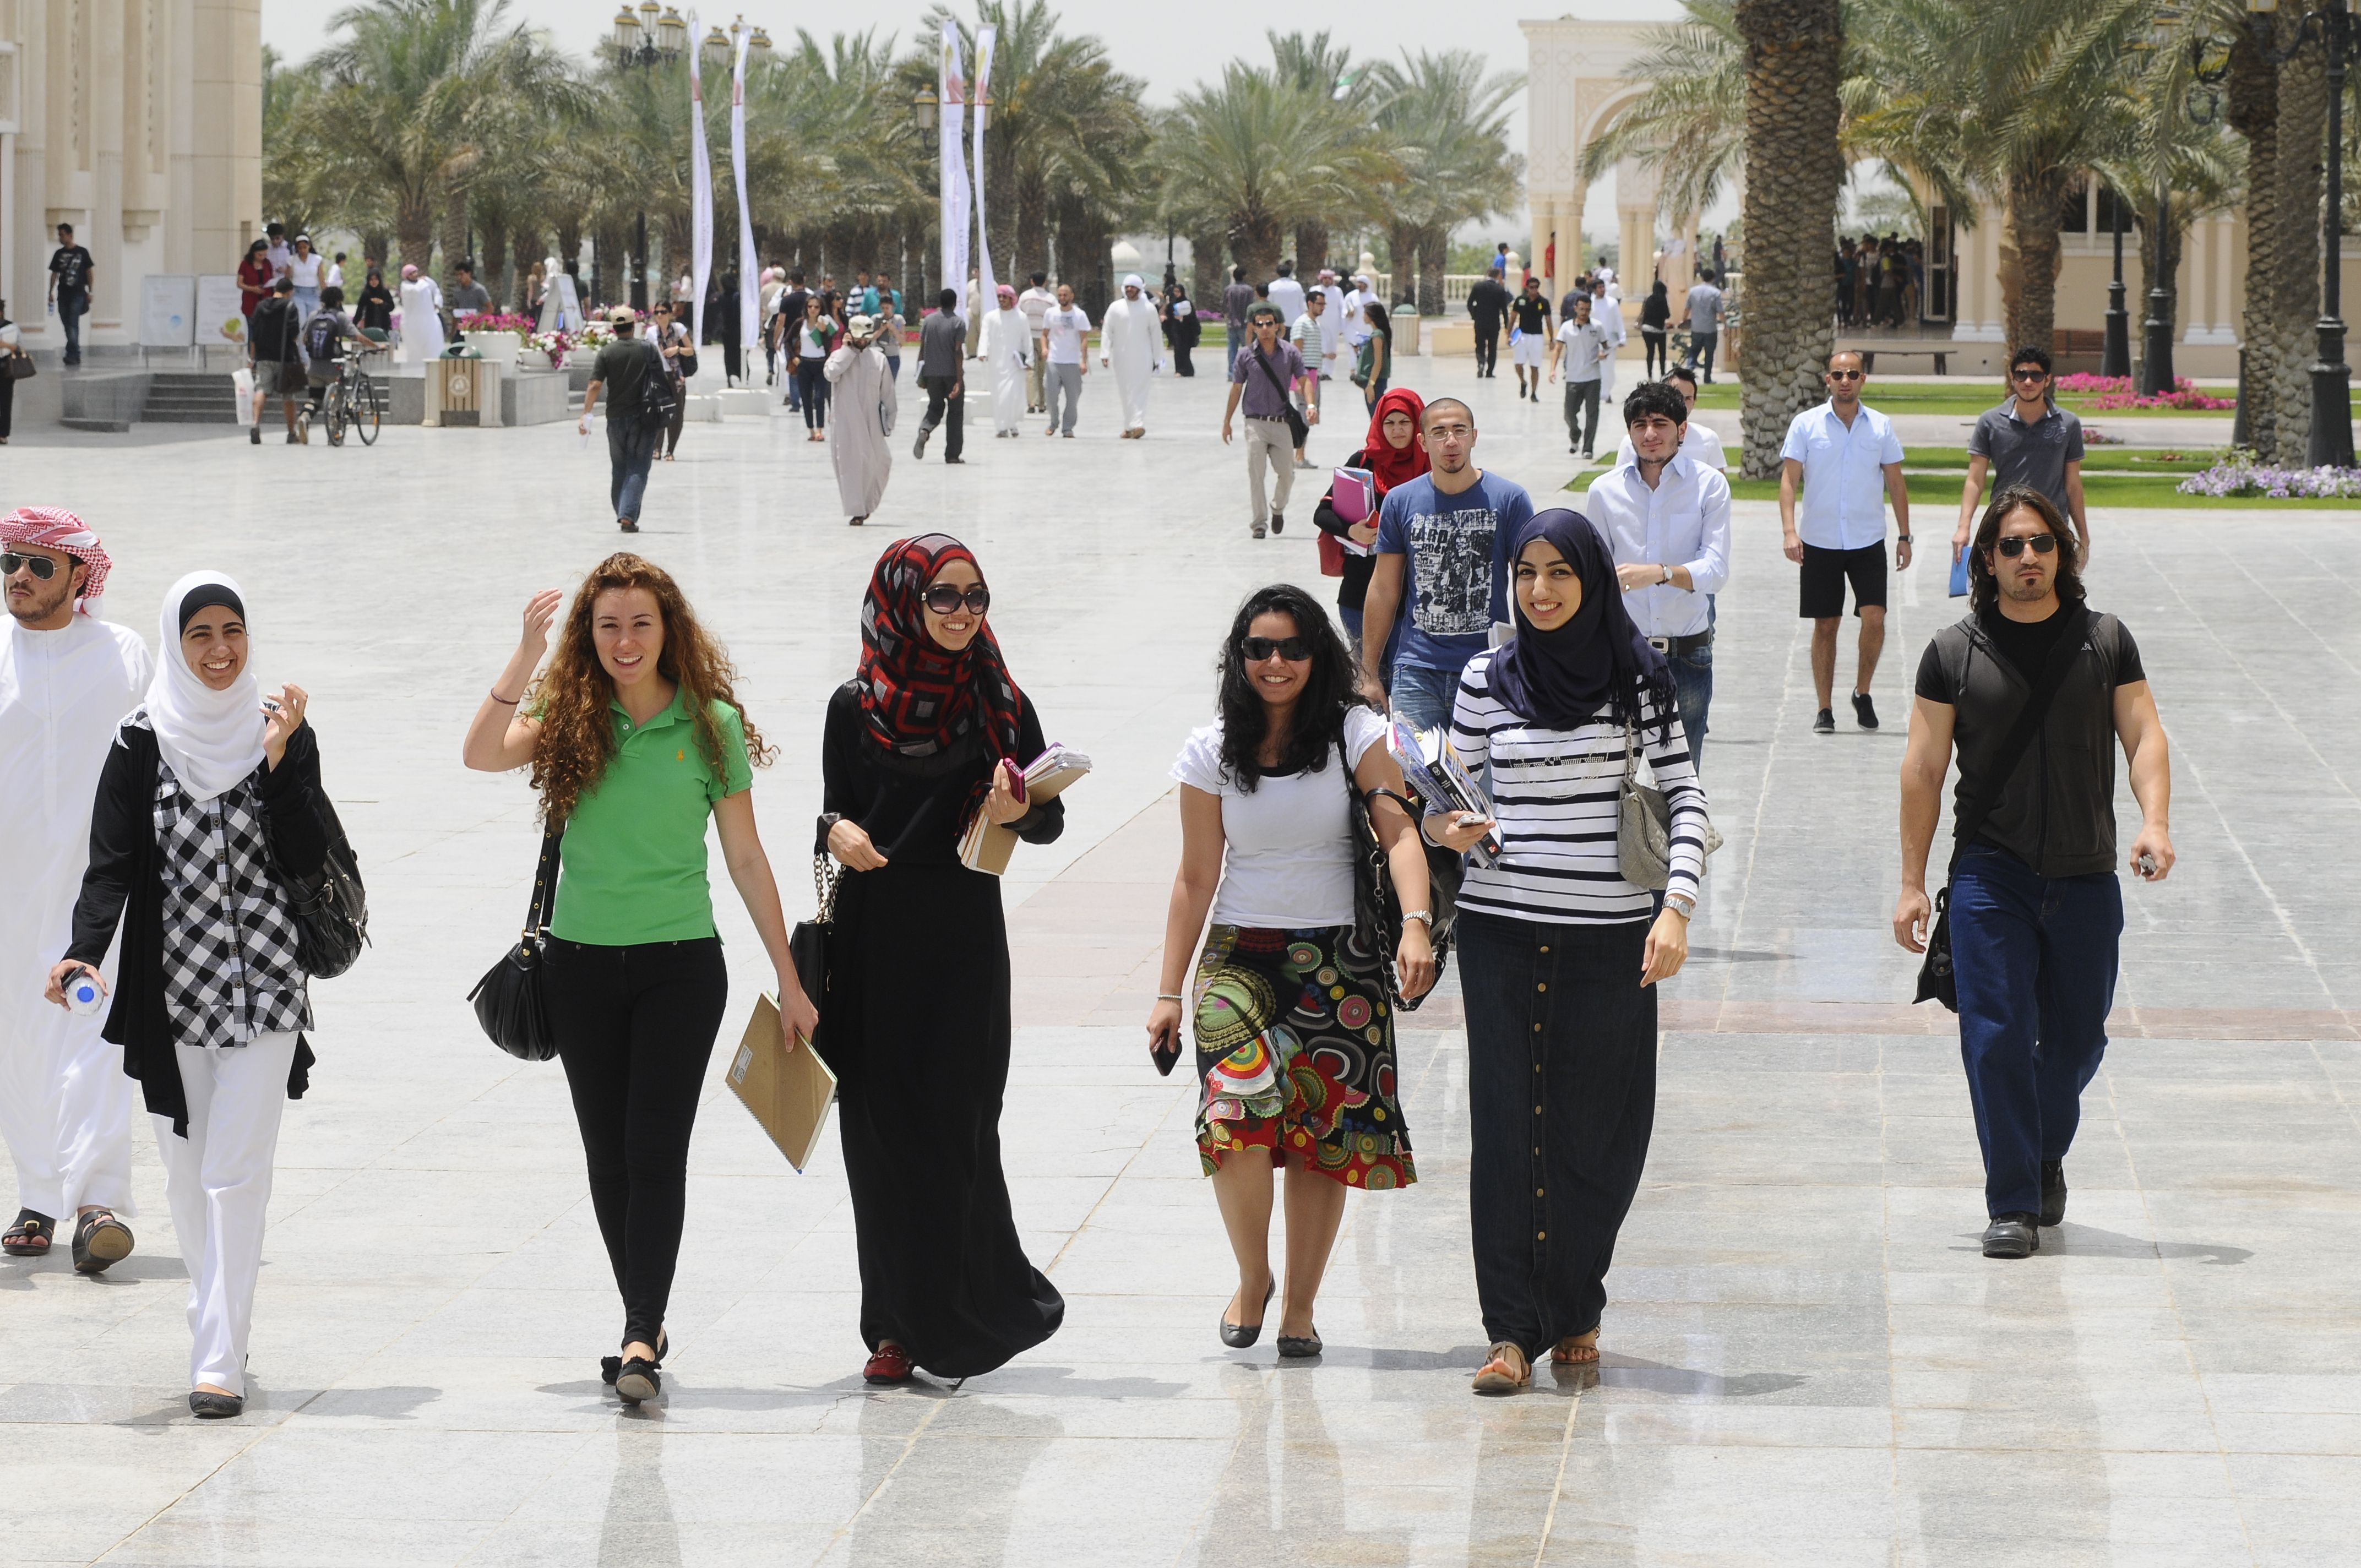 You will make some of your best friendships at #AUSharjah